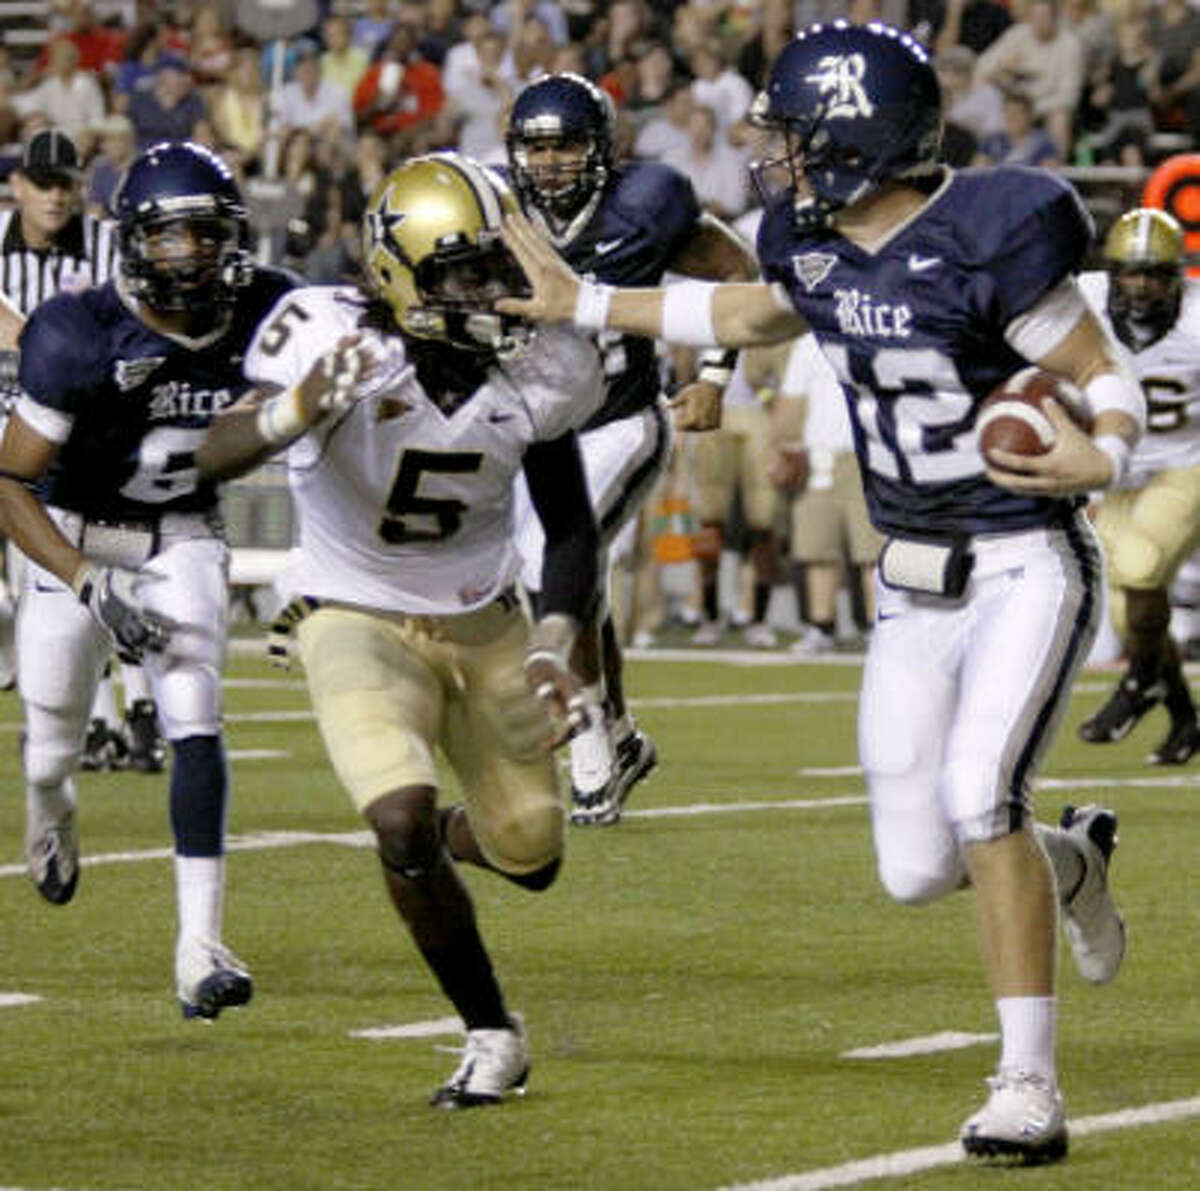 Rice Owls quarterback Ryan Lewis holds off Vanderbilt CB Myron Lewis during Rice's home football opener Saturday.